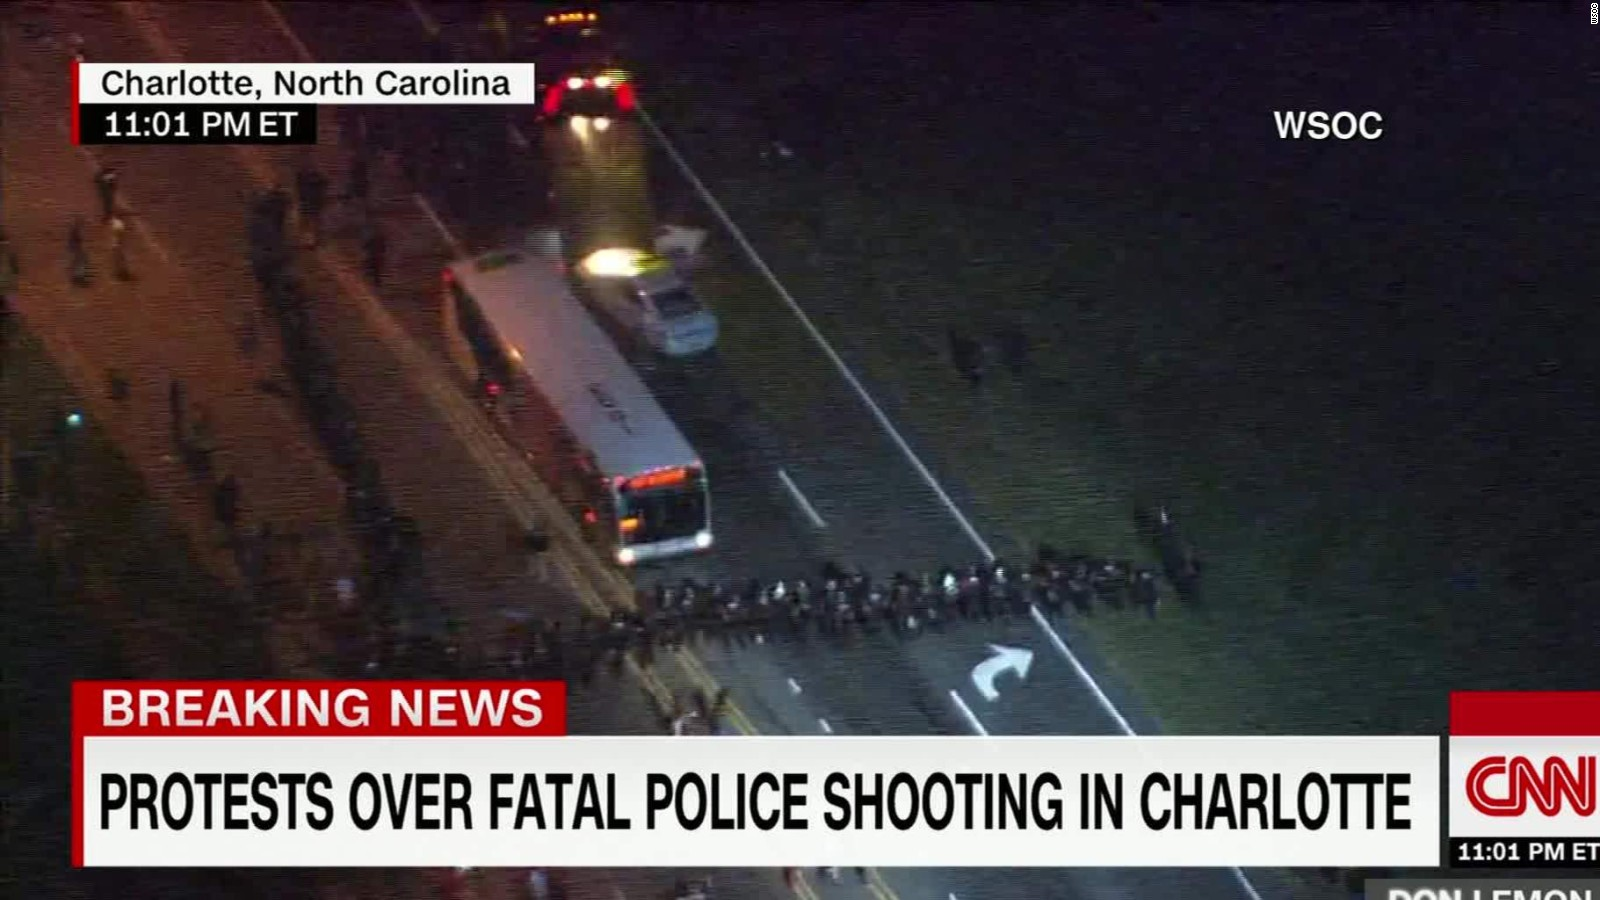 http://i2.cdn.cnn.com/cnnnext/dam/assets/160920231756-charlotte-north-carolina-portest-fatal-police-shooting-sellers-lemon-ctn-00000517-full-169.jpg